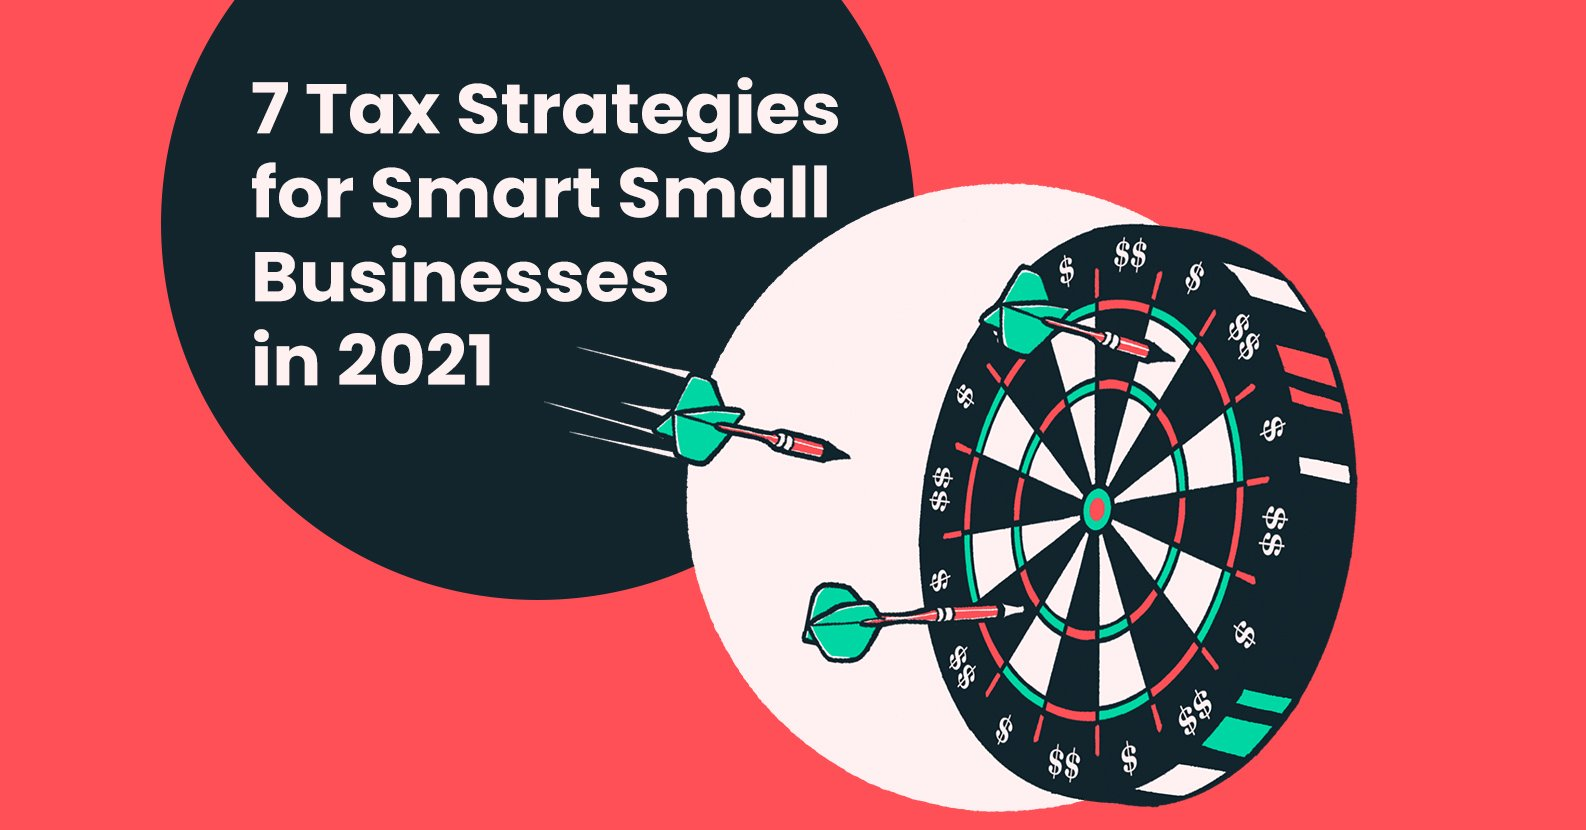 [Ebook]: A Tax Director's Top 7 Tax Strategies for Small Businesses in 2021